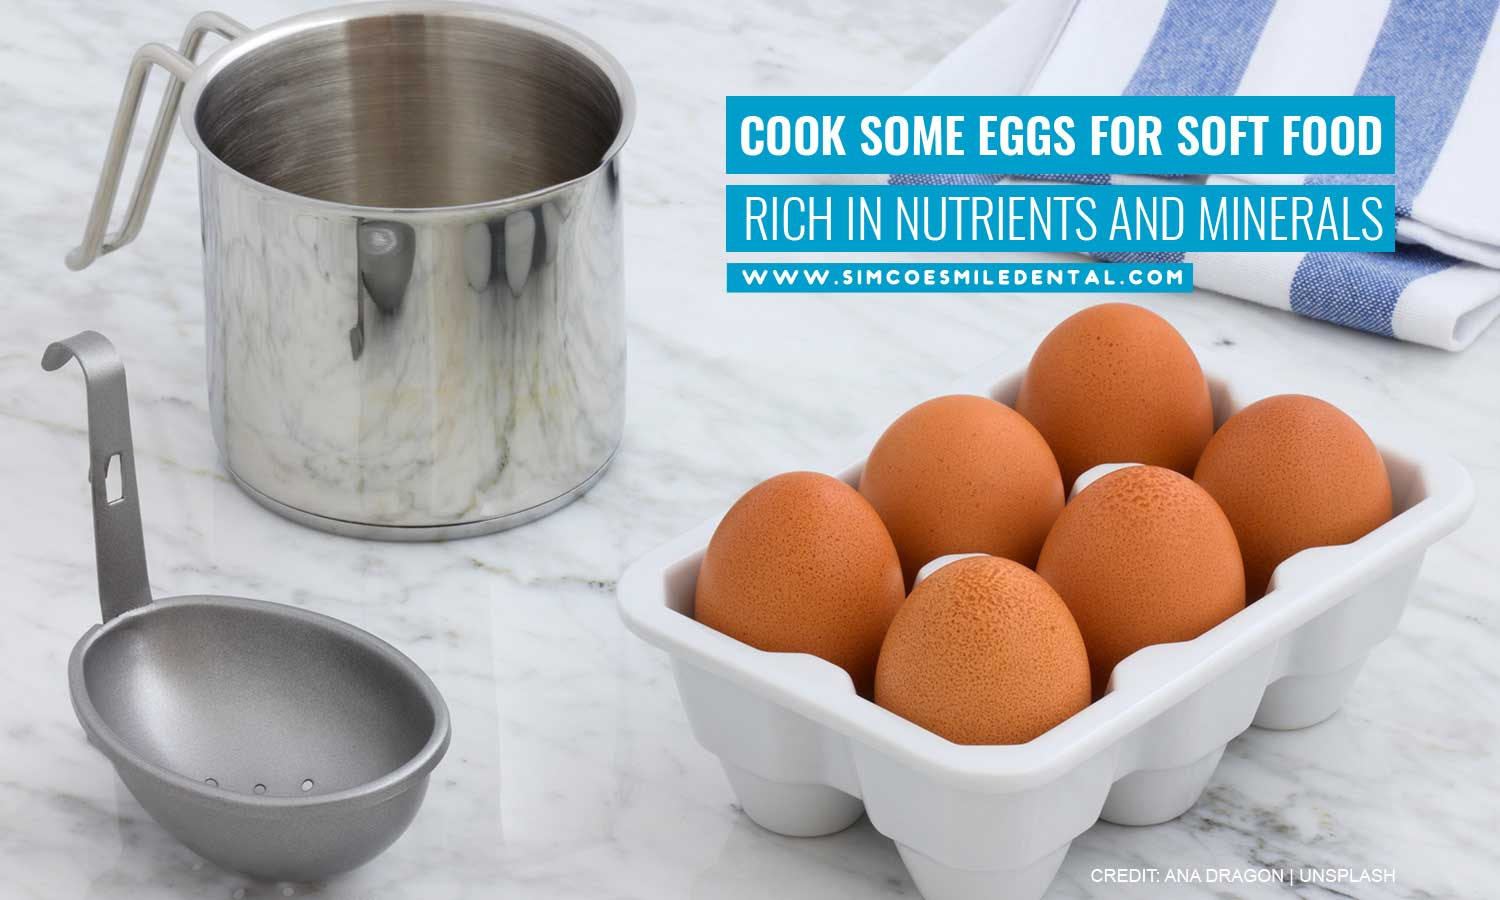 Cook-some-eggs-for-soft-food-rich-in-nutrients-and-minerals 9 Easiest Foods for New Braces